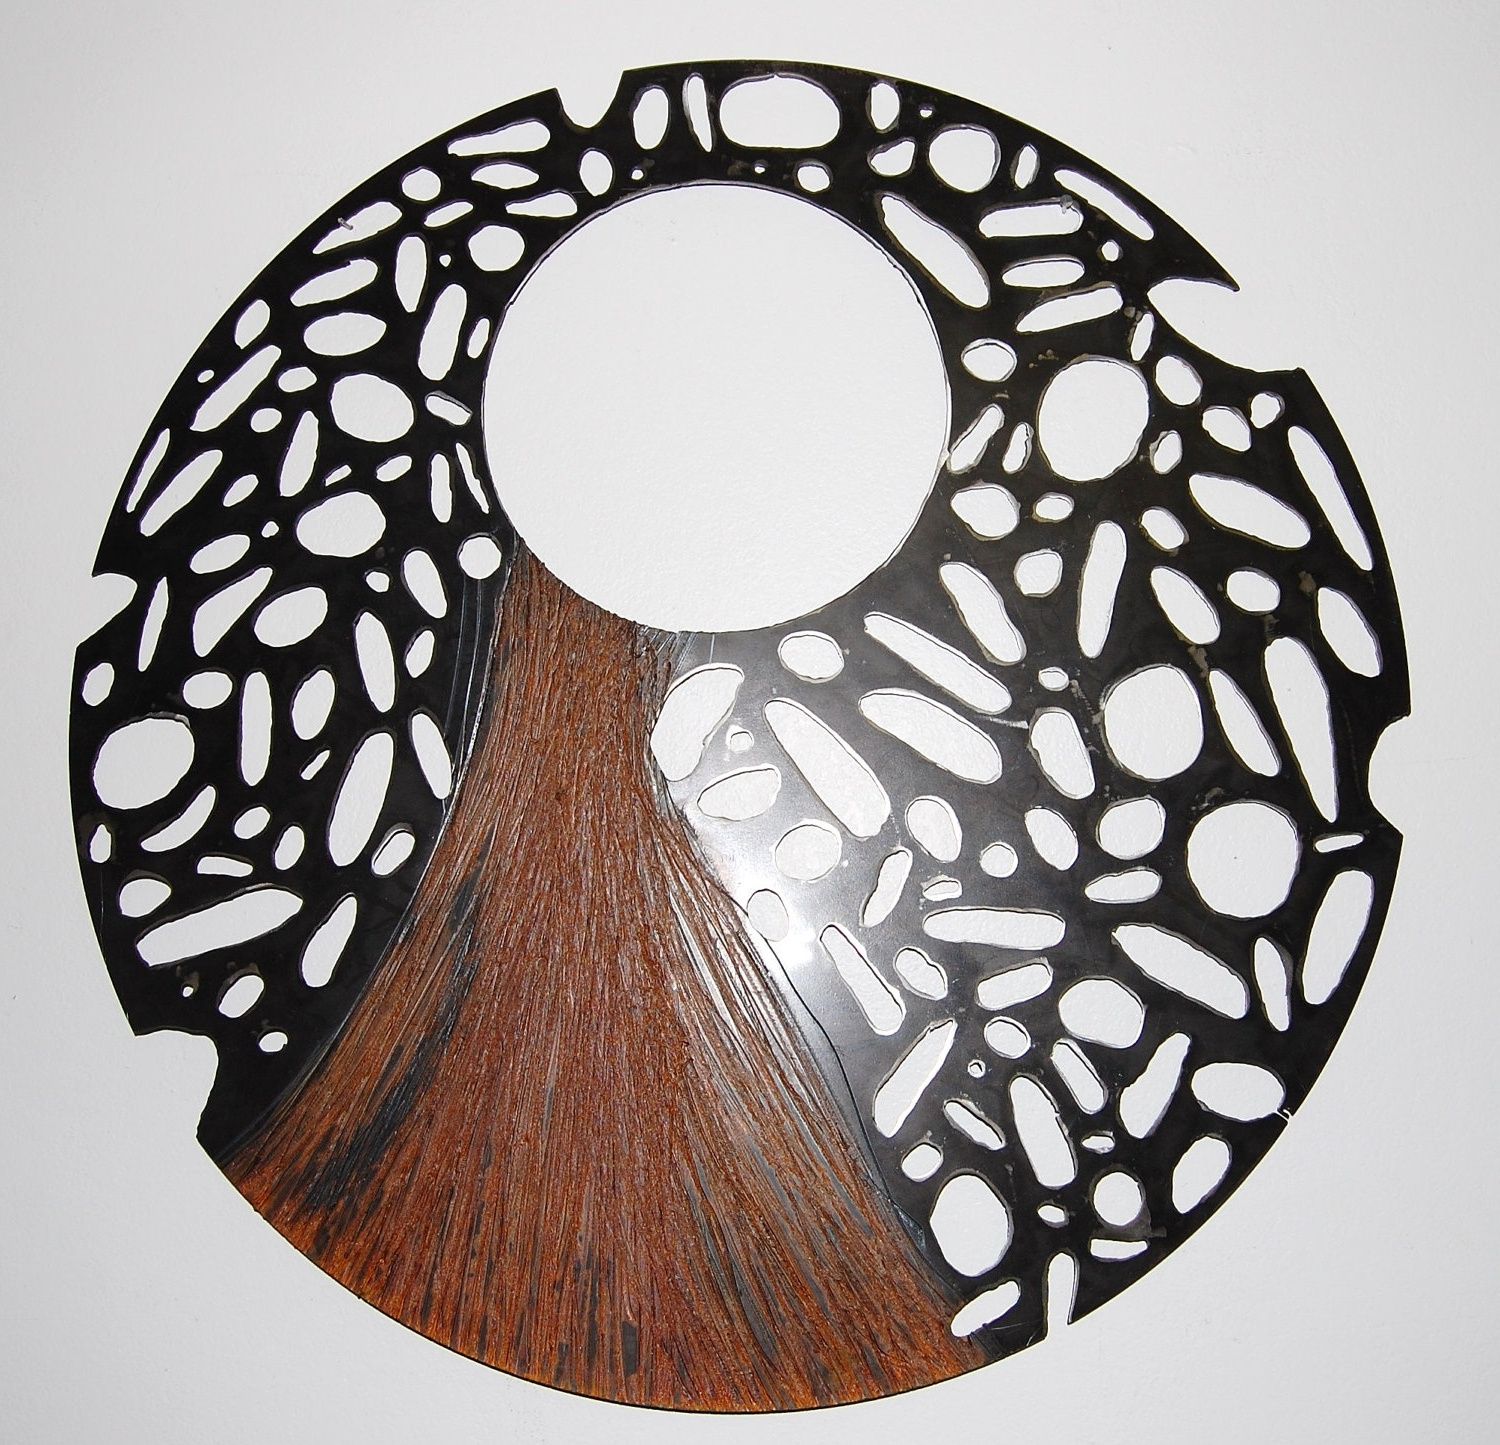 Recent Large Steel Sculpture,recycled Metal Wall Art, Round Perforated In Abstract Garden Wall Art (View 11 of 15)